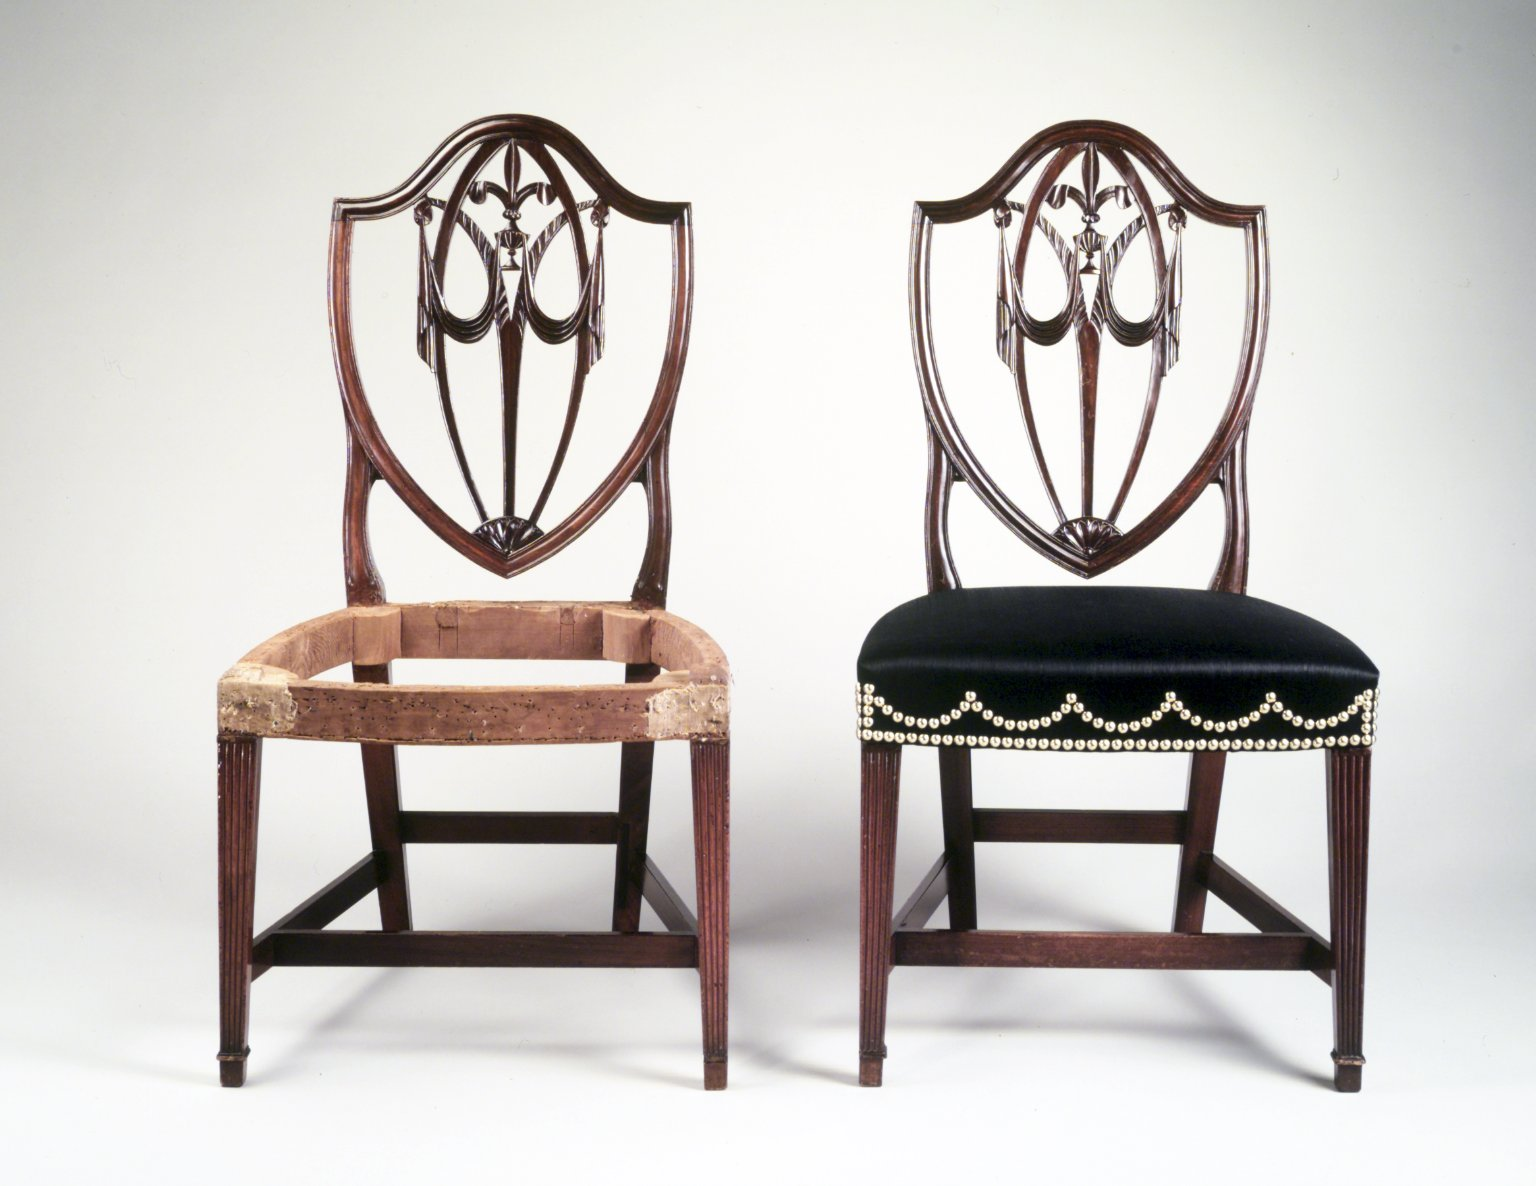 Brooklyn Museum: Side Chair